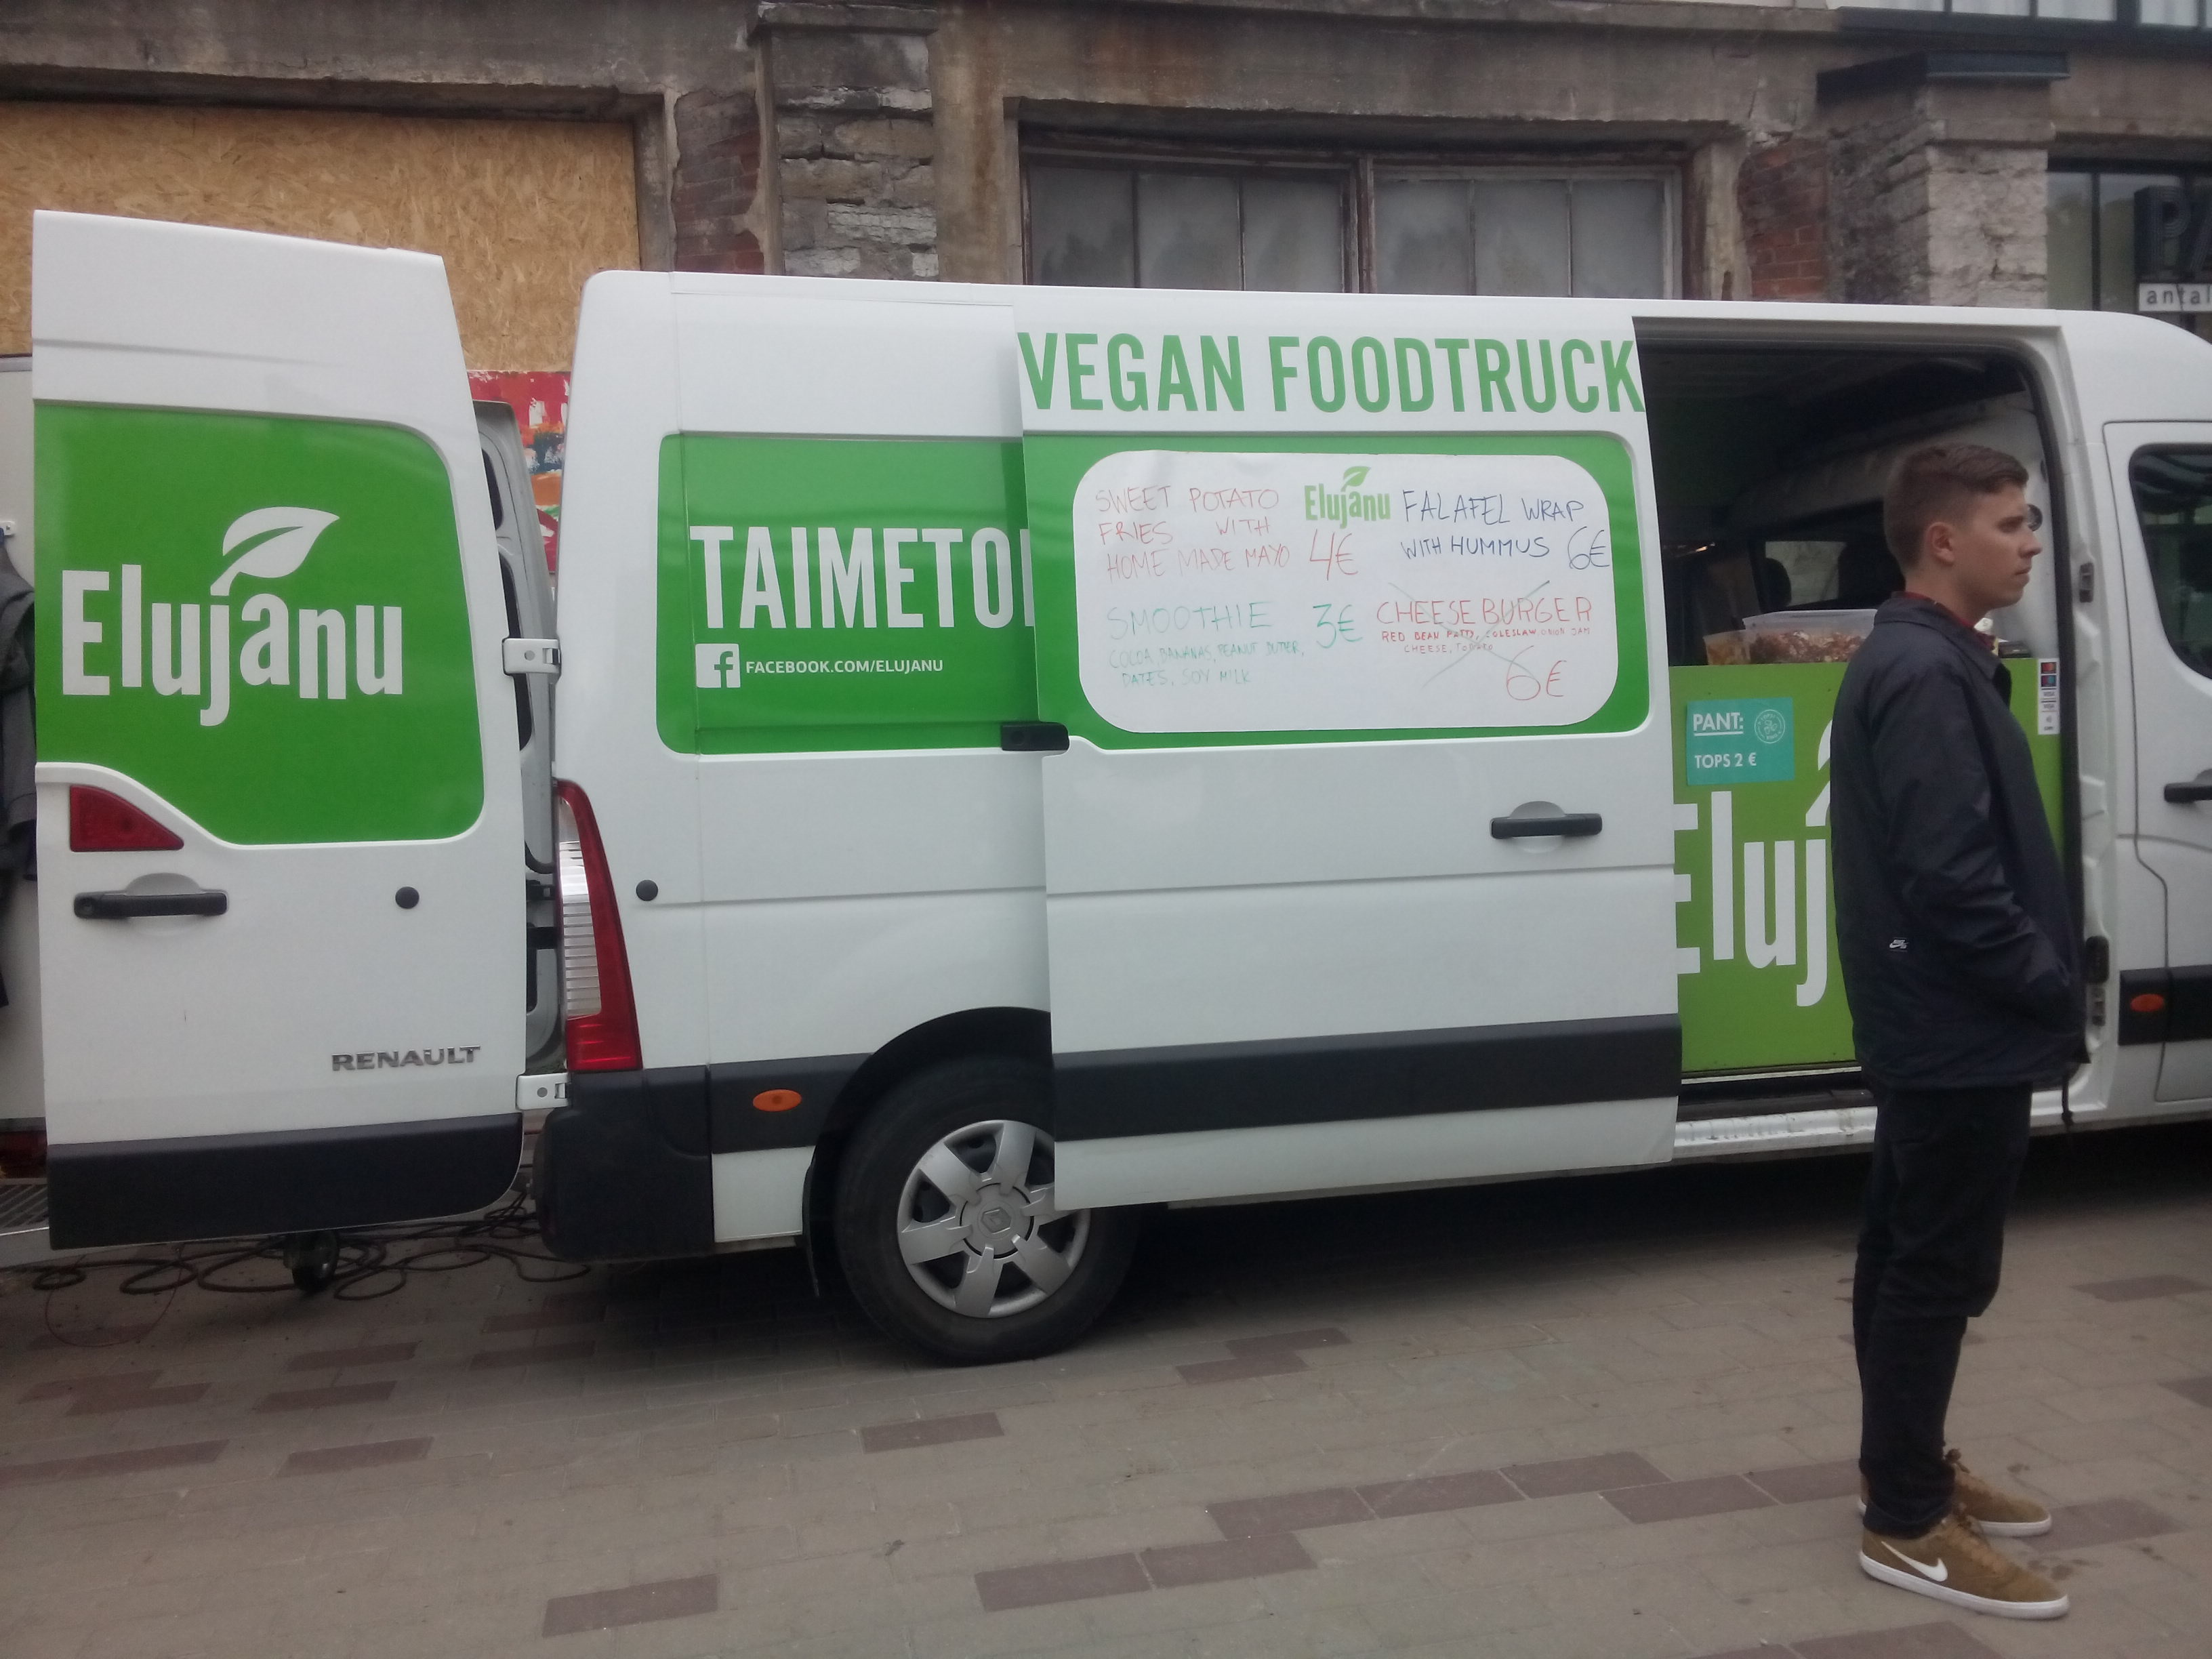 A white and green truck with 'vegan foodtruck' on the side